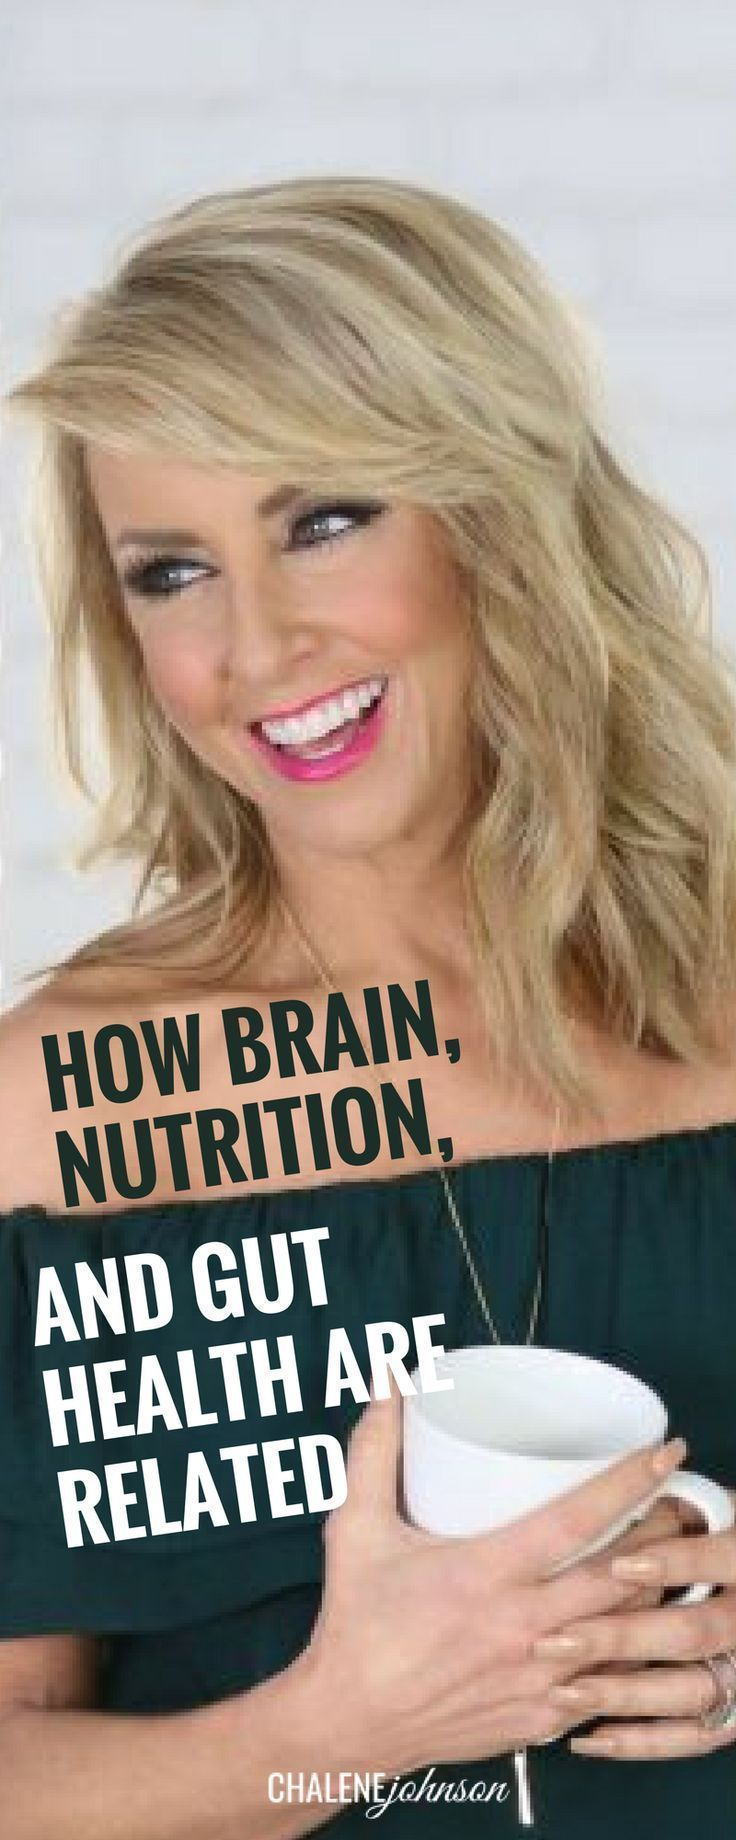 Why I Became a Pseudo Scientist Brain nutrition, Gut